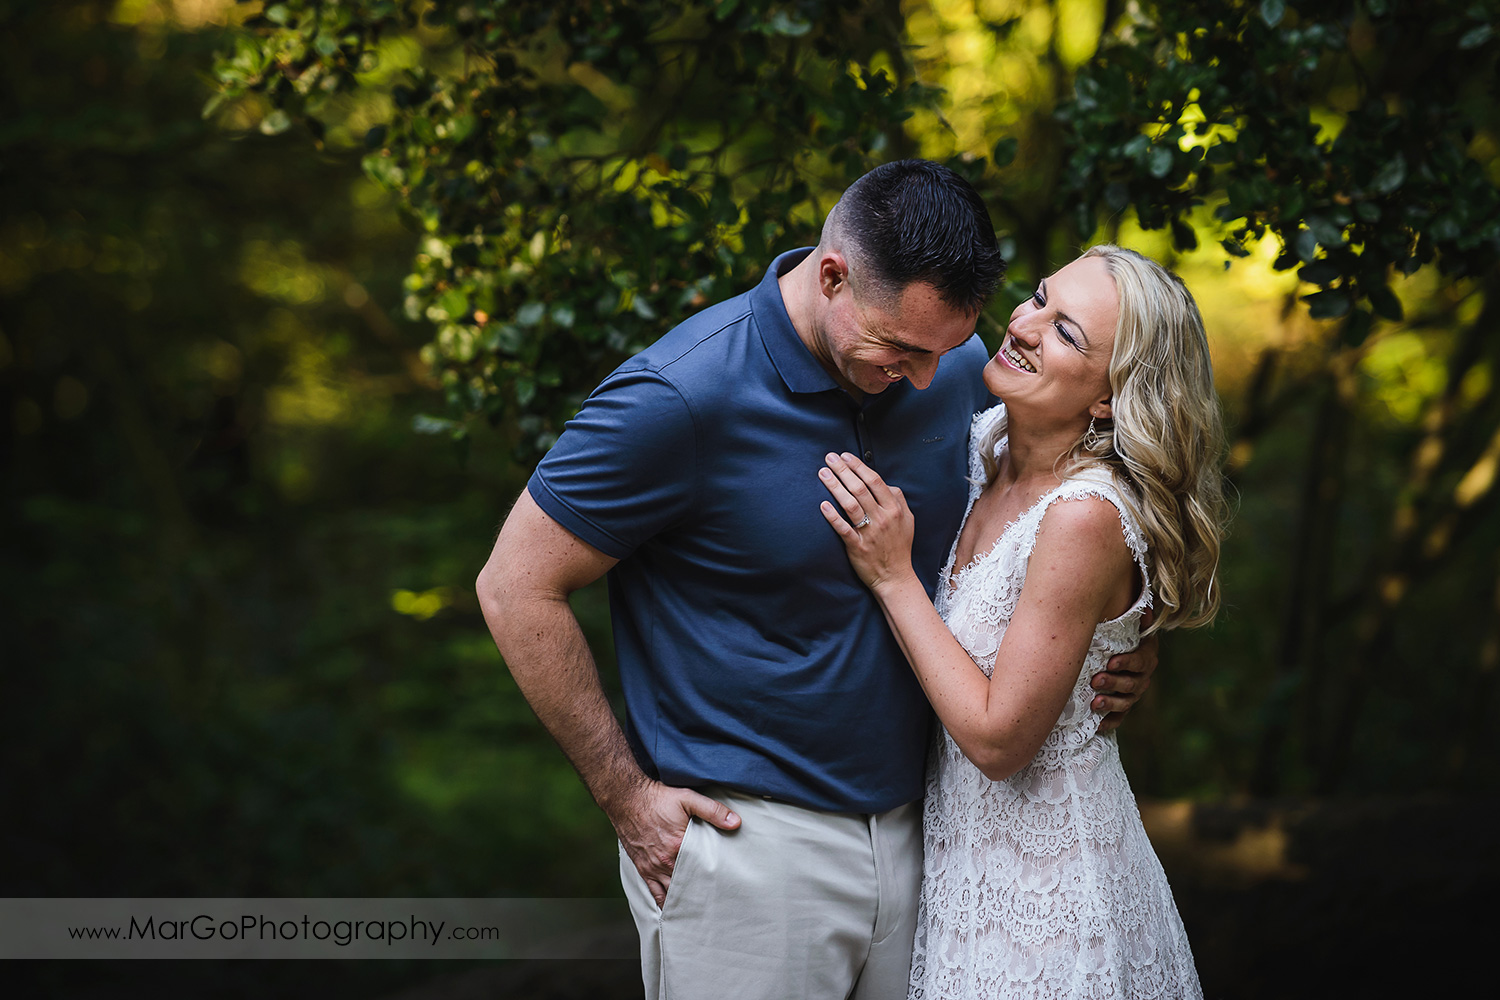 3/4 portrait of man in navy blue shirt and woman in white dress laughing during engagement session at San Francisco Golden Gate Park